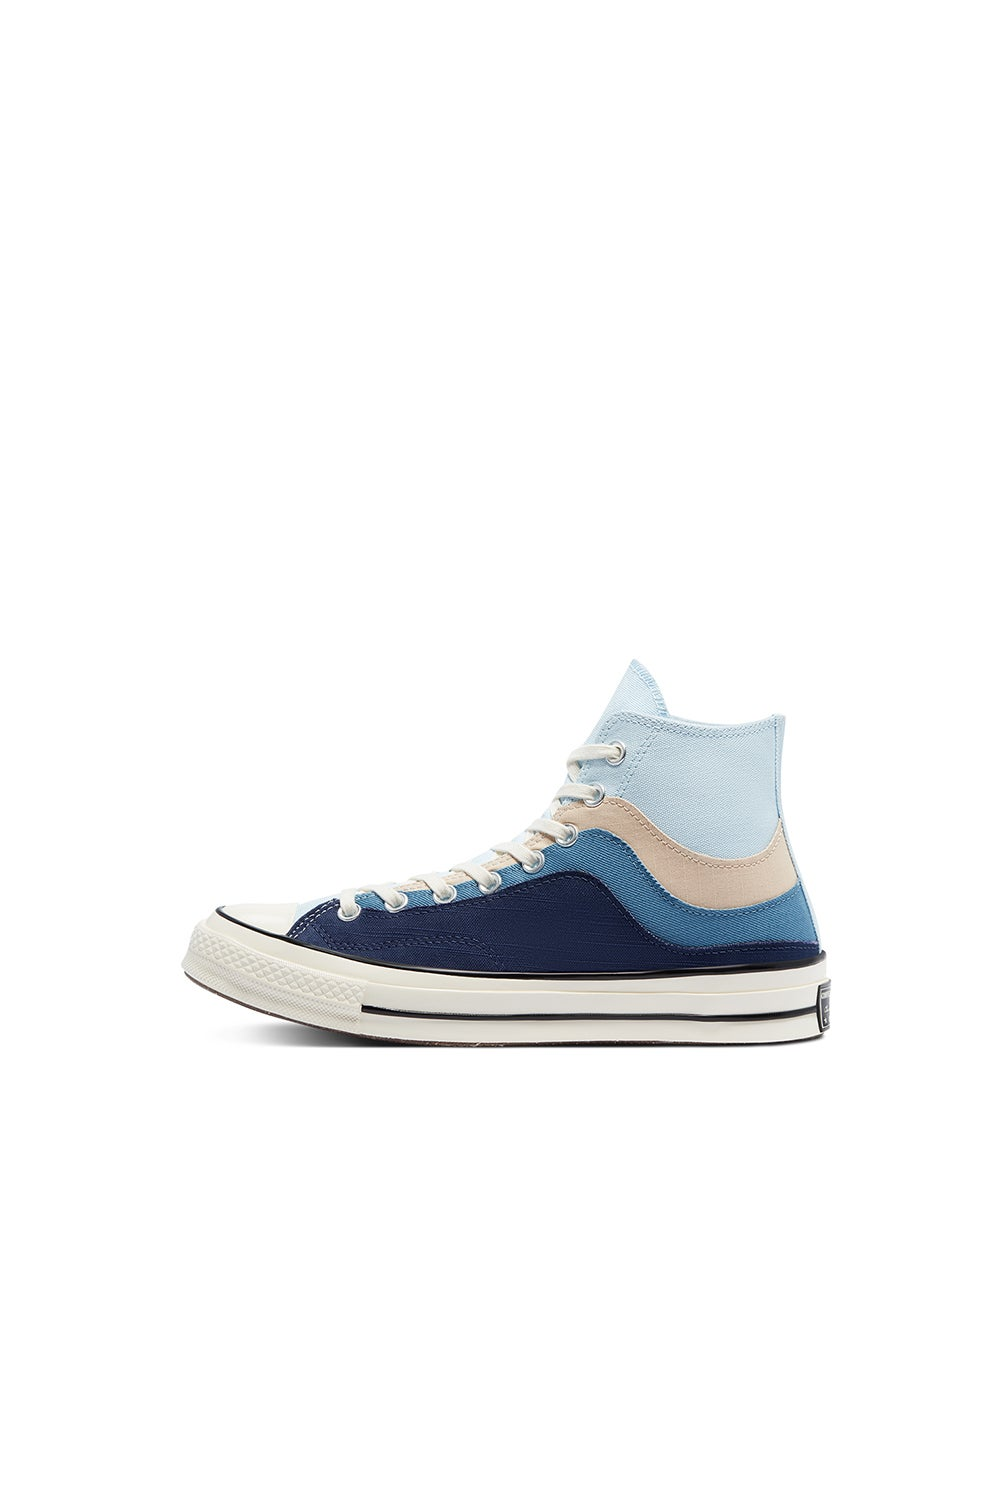 Converse Chuck Taylor All Star 70 National Parks High Top Chambray Blue